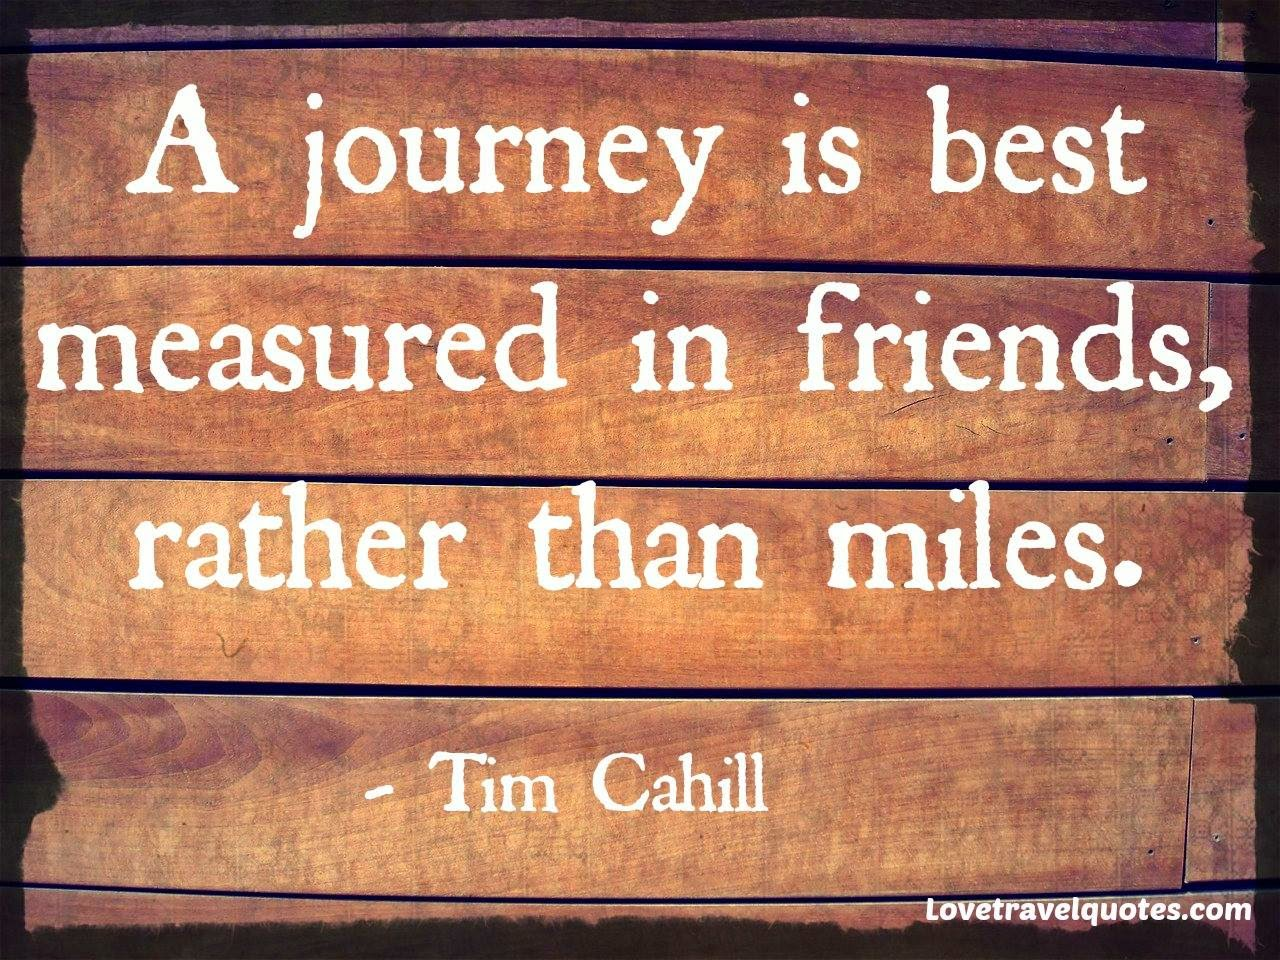 a journey is best measured in friends, rather than miles